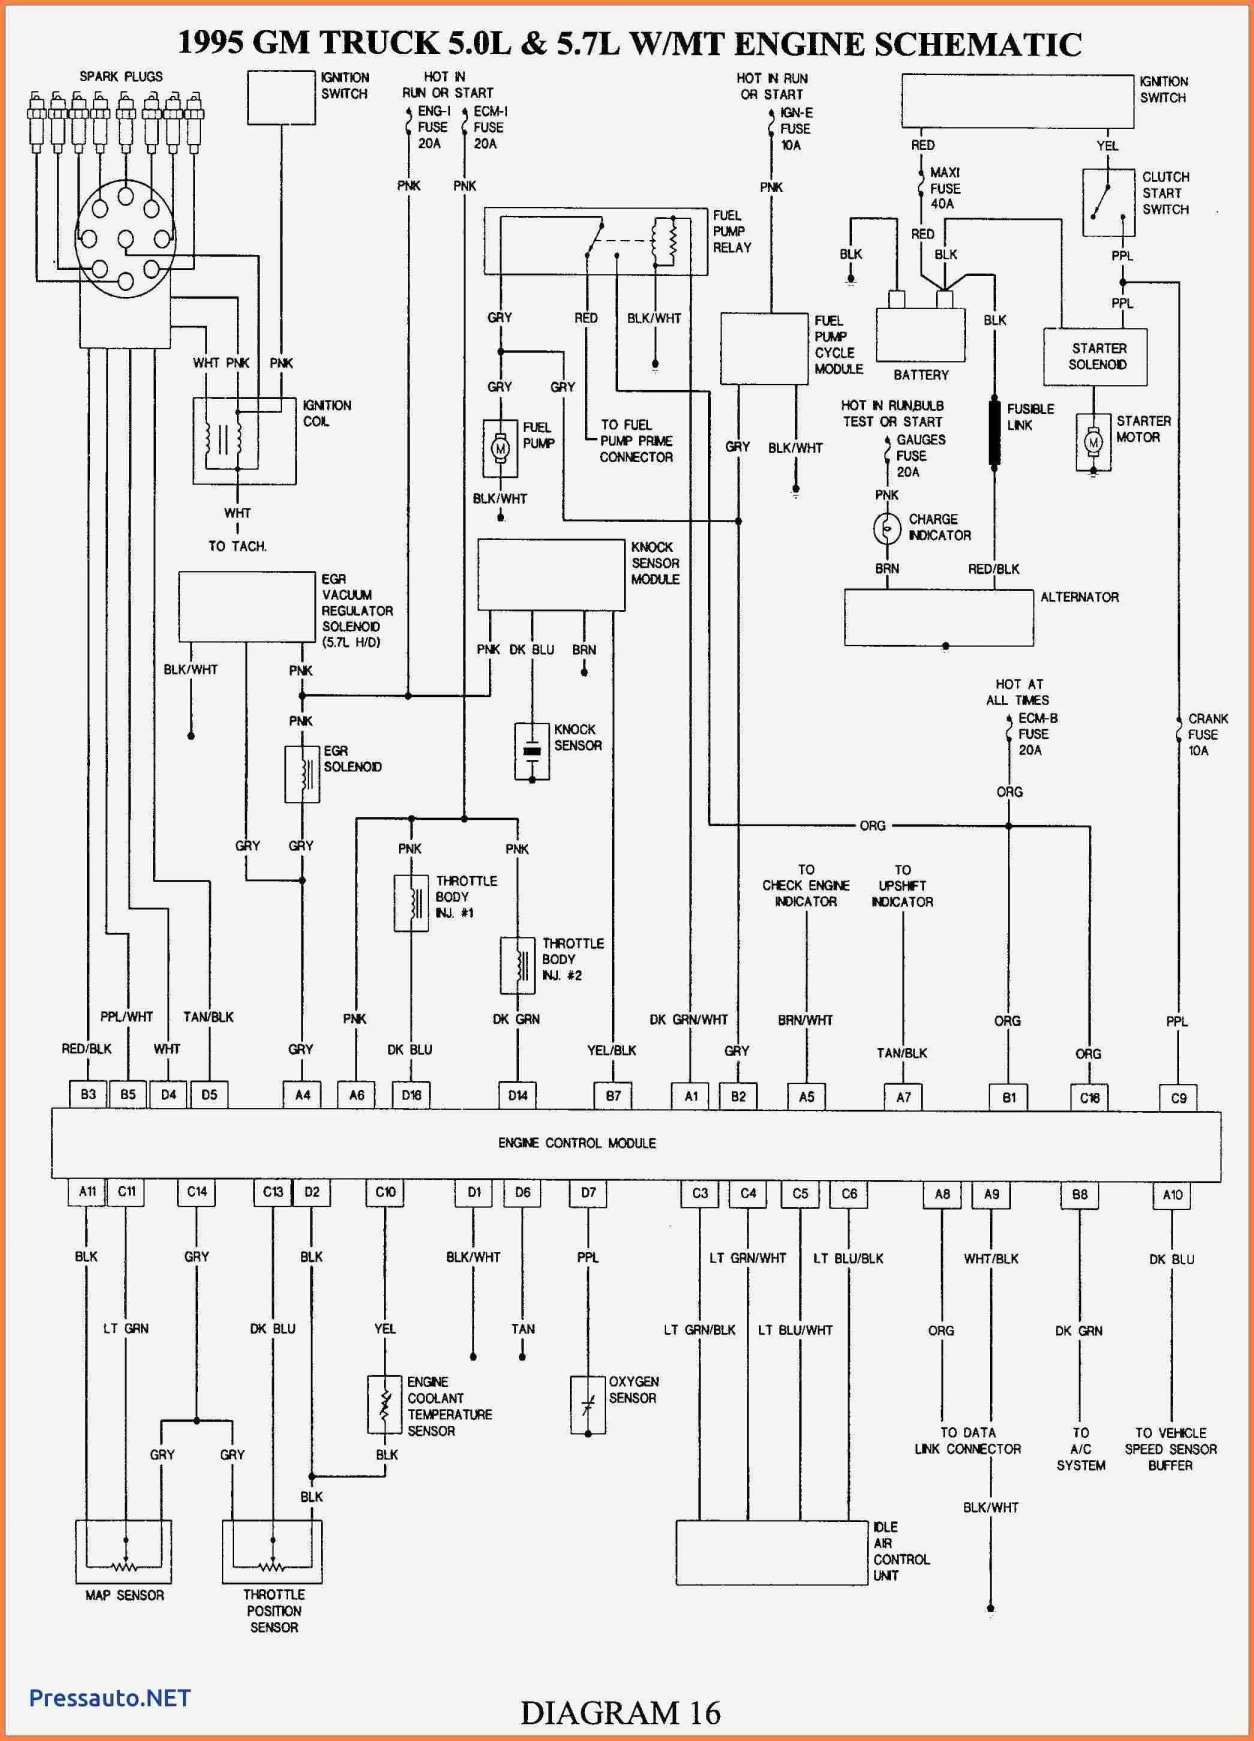 40+ 40 Chevy Truck Wiring Diagram   Chevy trucks, 40 chevy ...